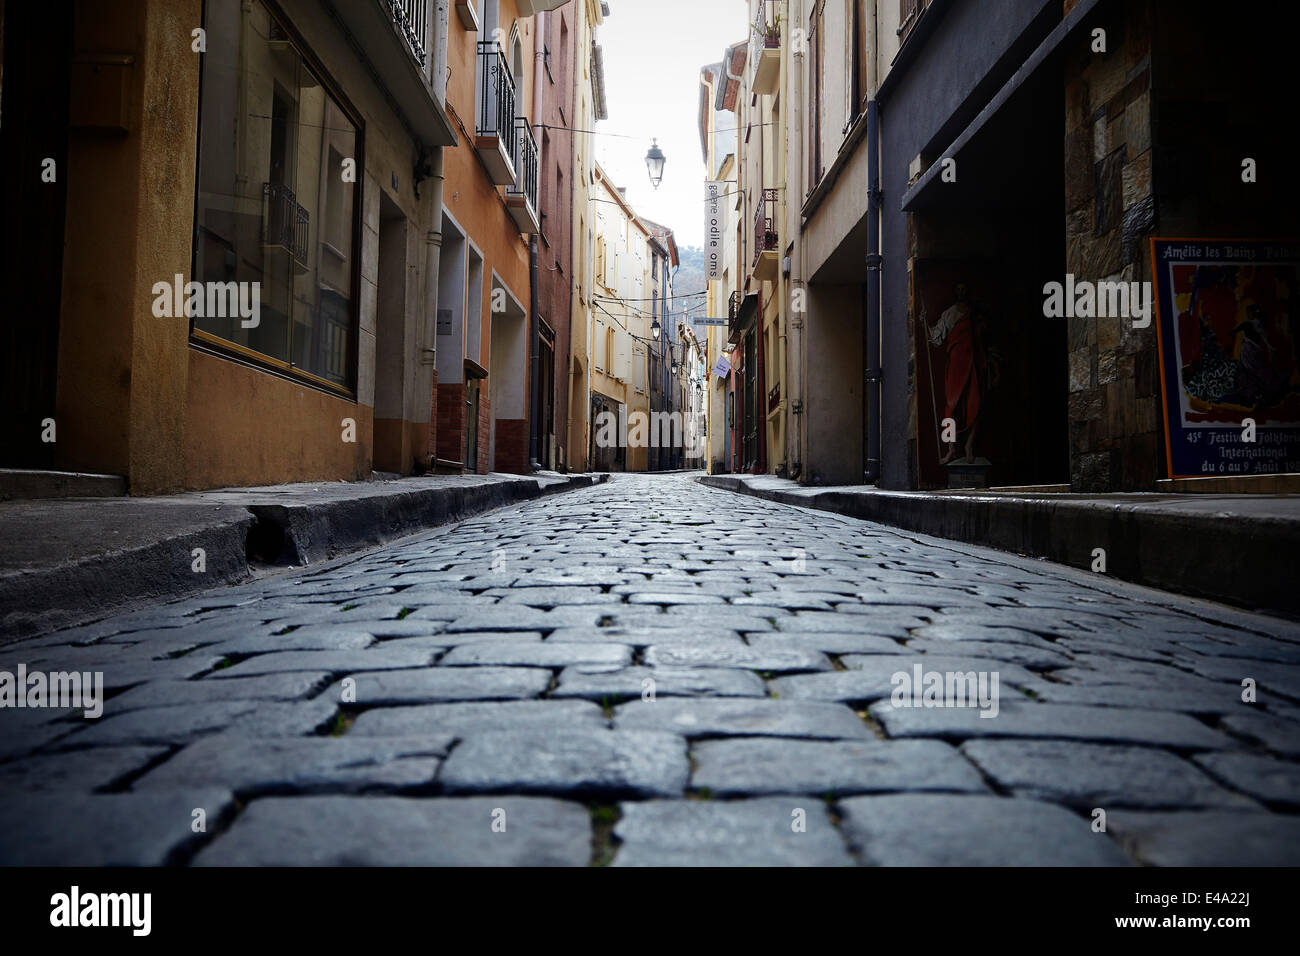 Ceret, Languedoc-Roussillon, France, Europe - Stock Image